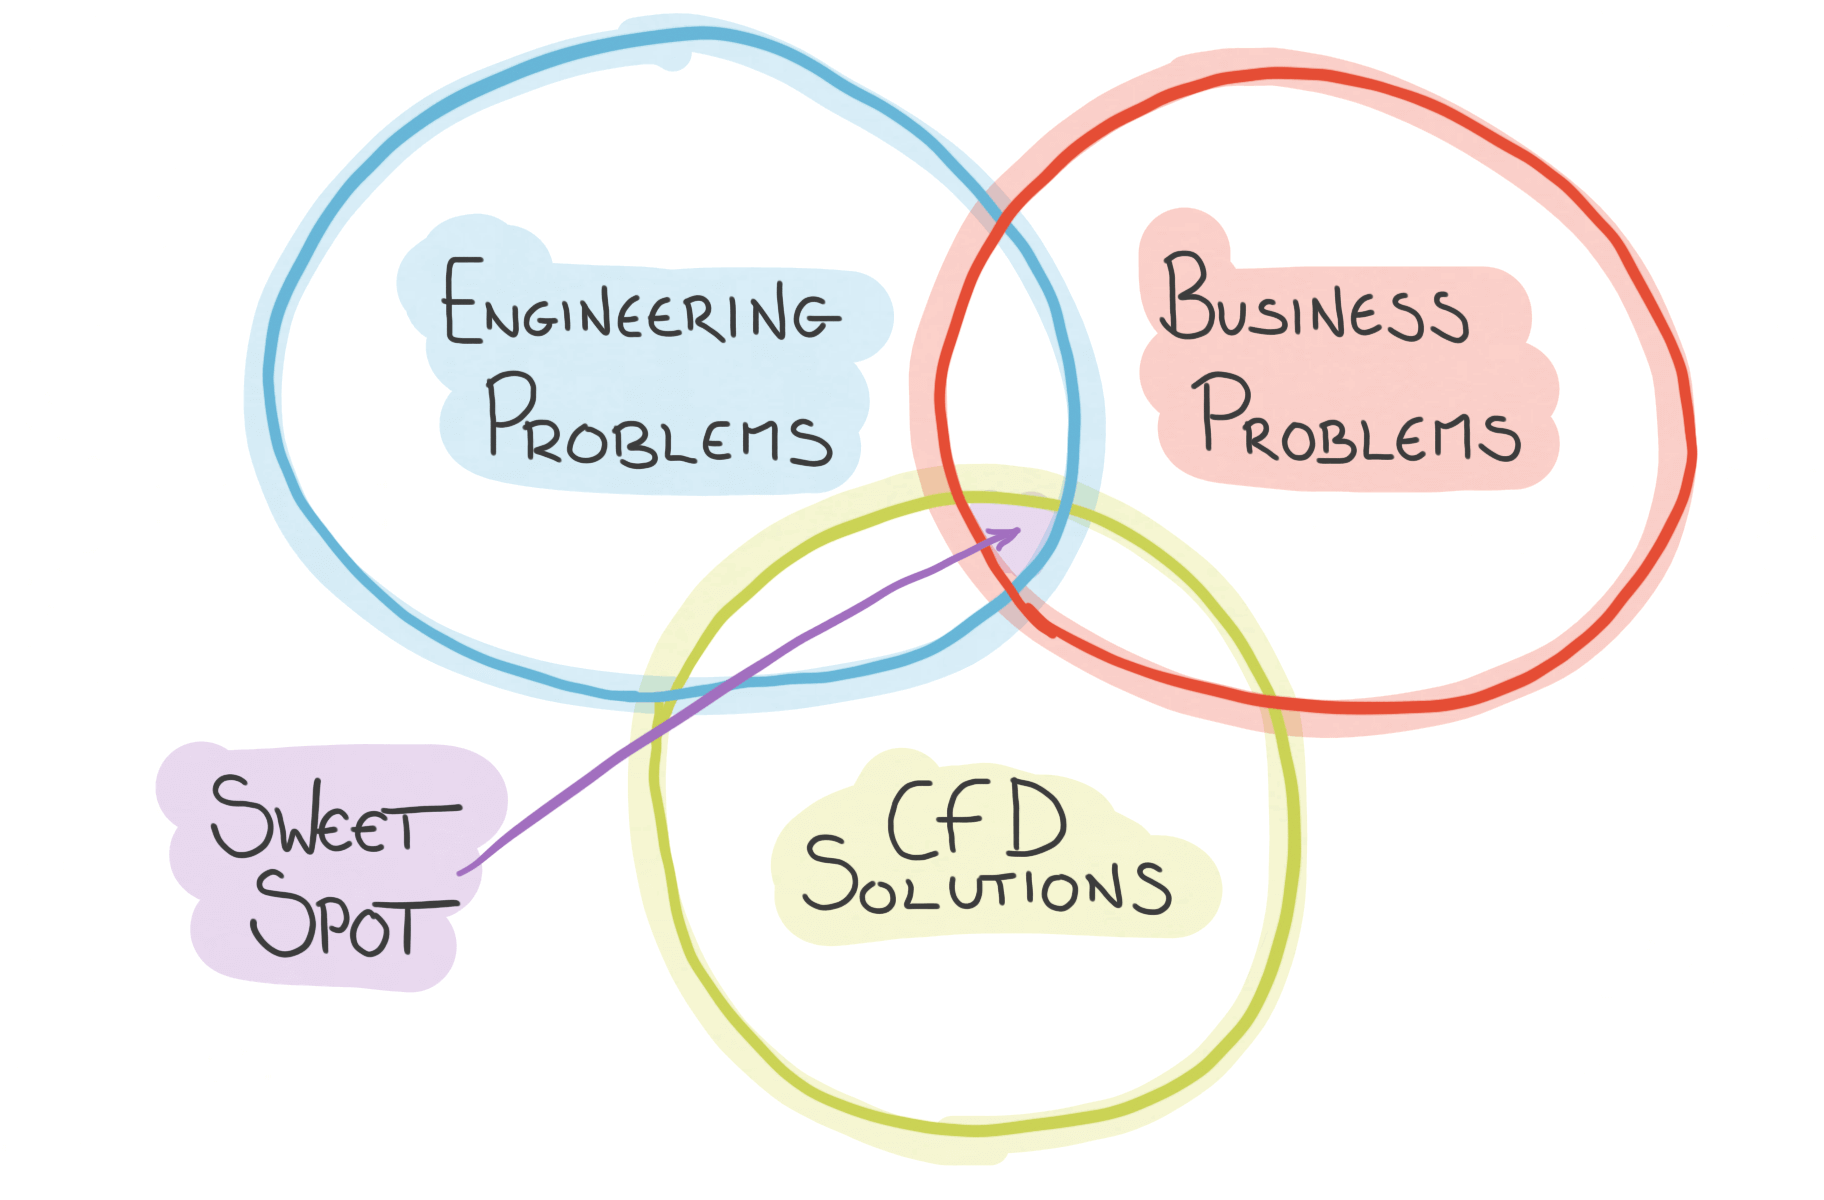 """The sweet spot - a business problem, rooted in engineering, with a CFD solution"""